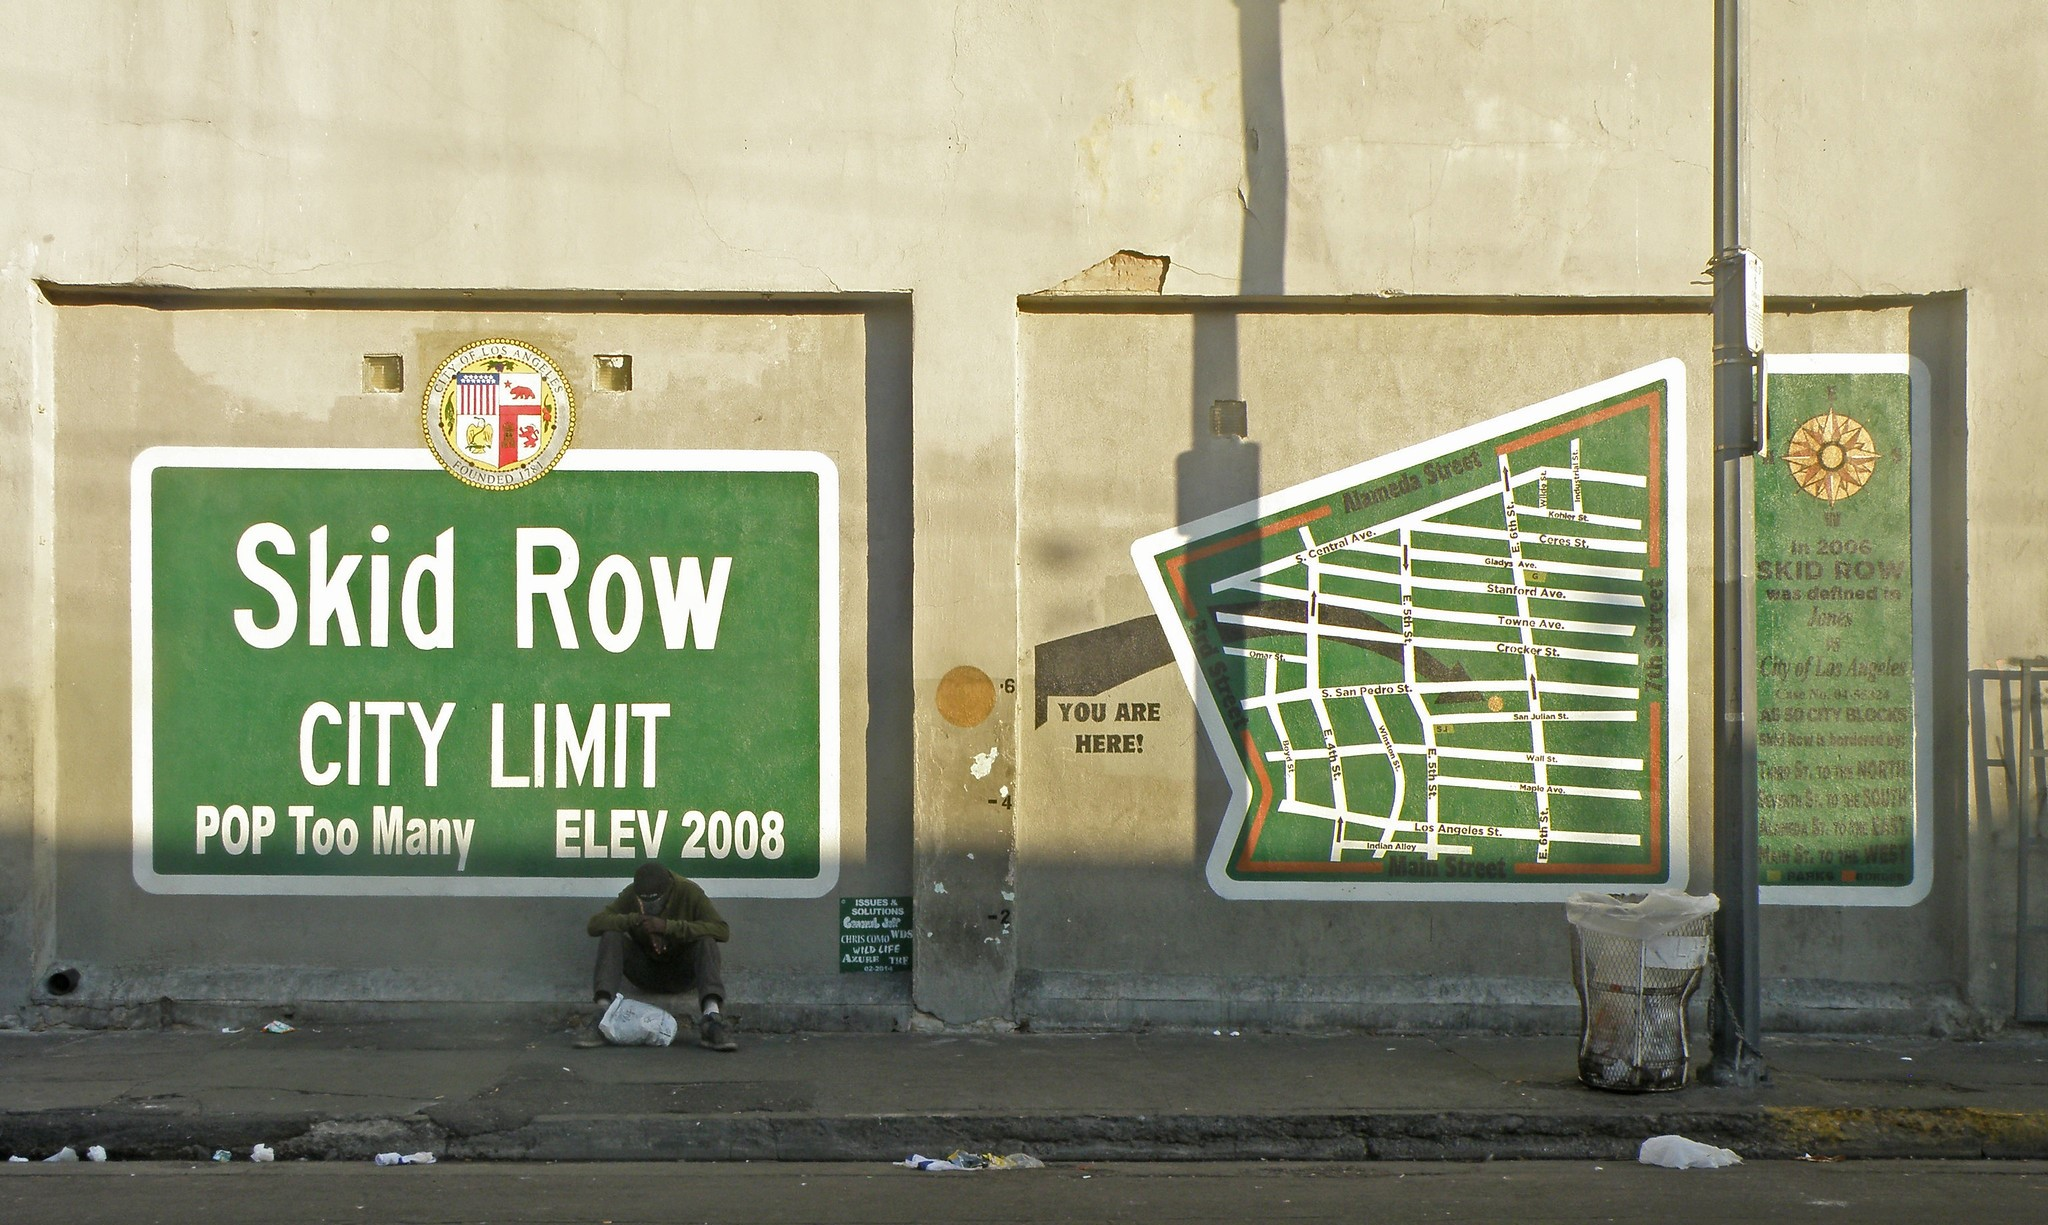 Federal judge orders Los Angeles to provide housing to Skid Row homeless